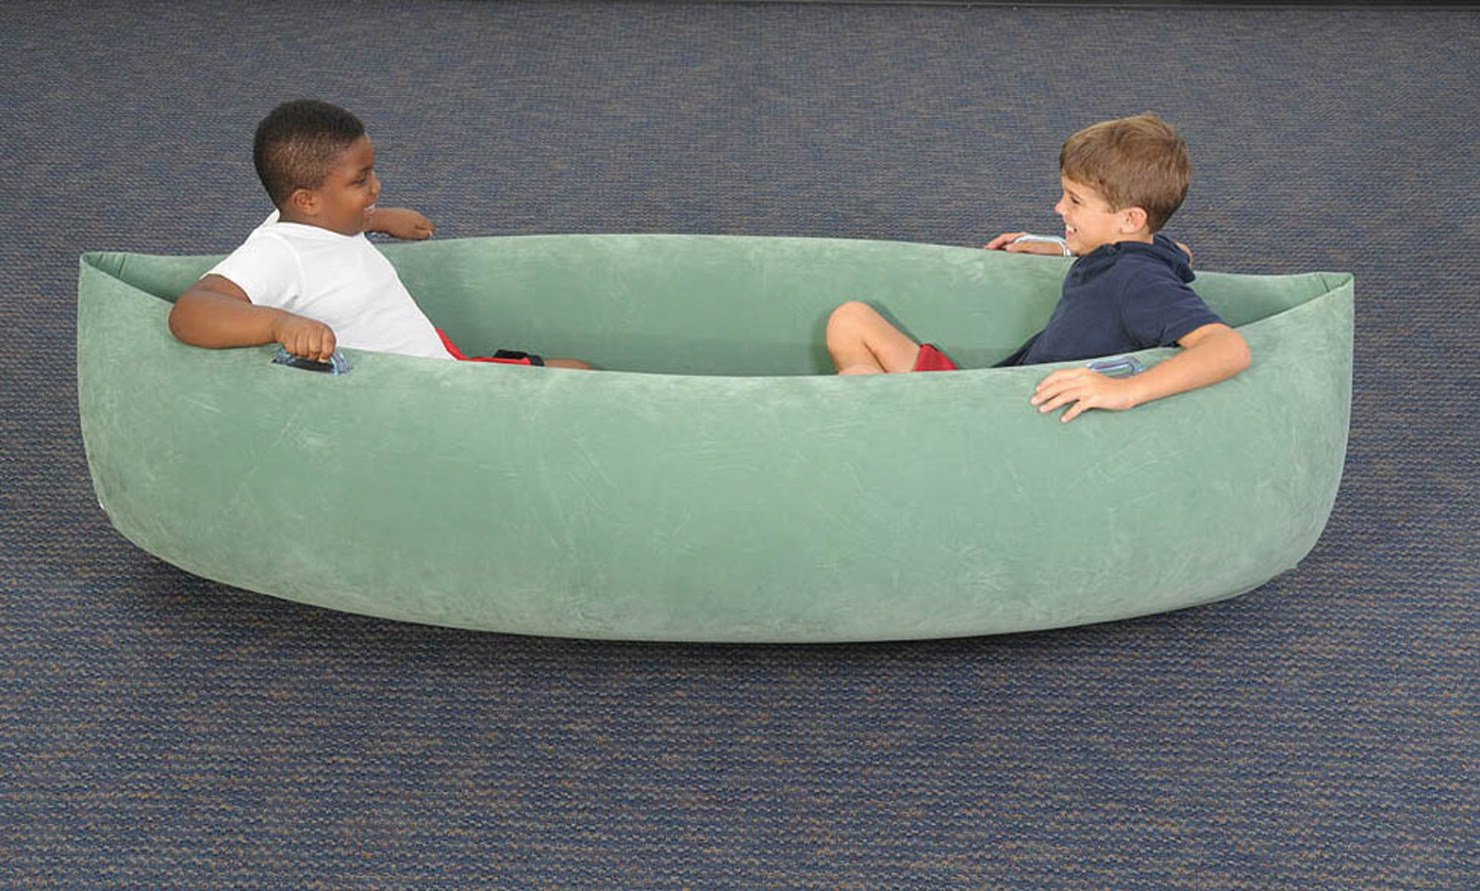 """Abilitations 1512741 Inflatable Pea Pod, Kindergarten to 5, 4 to 12 Years, 21.5"""" Height, 37"""" Wide, 80"""" Length, Vinyl, X-Large, Green"""